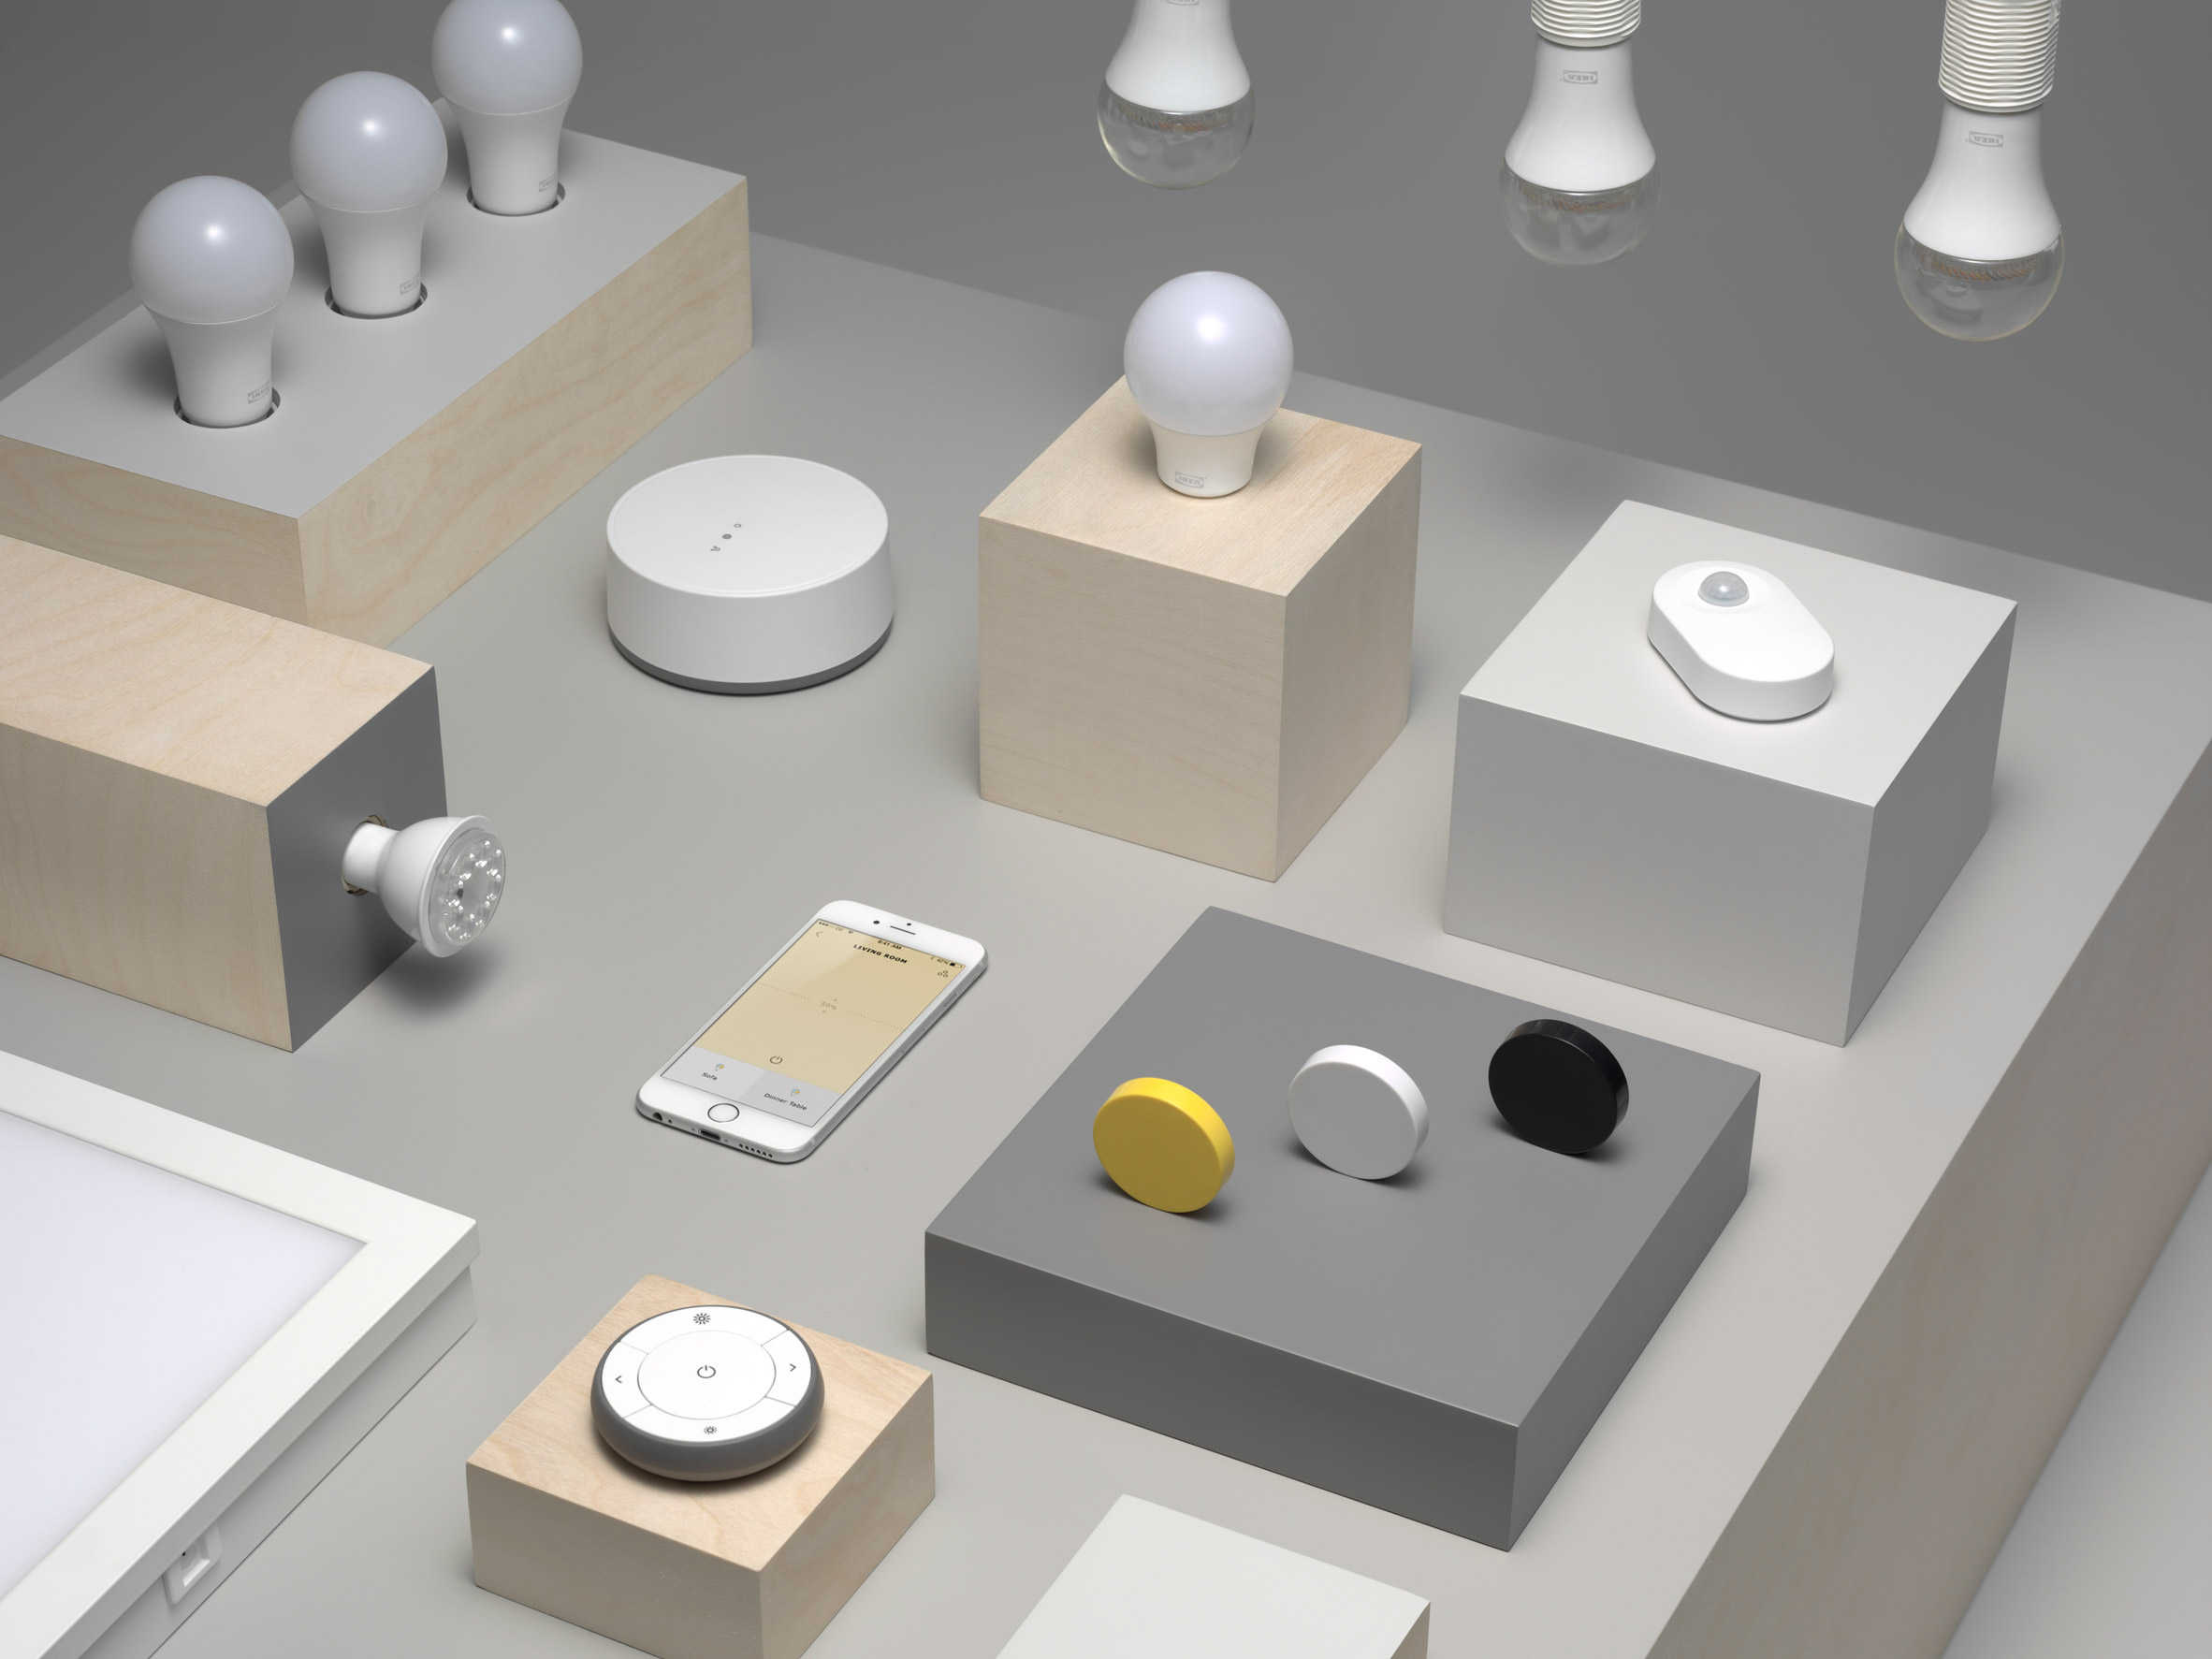 ikea-smart-lights-design-lighting-lamps_dezeen_2364_col_0